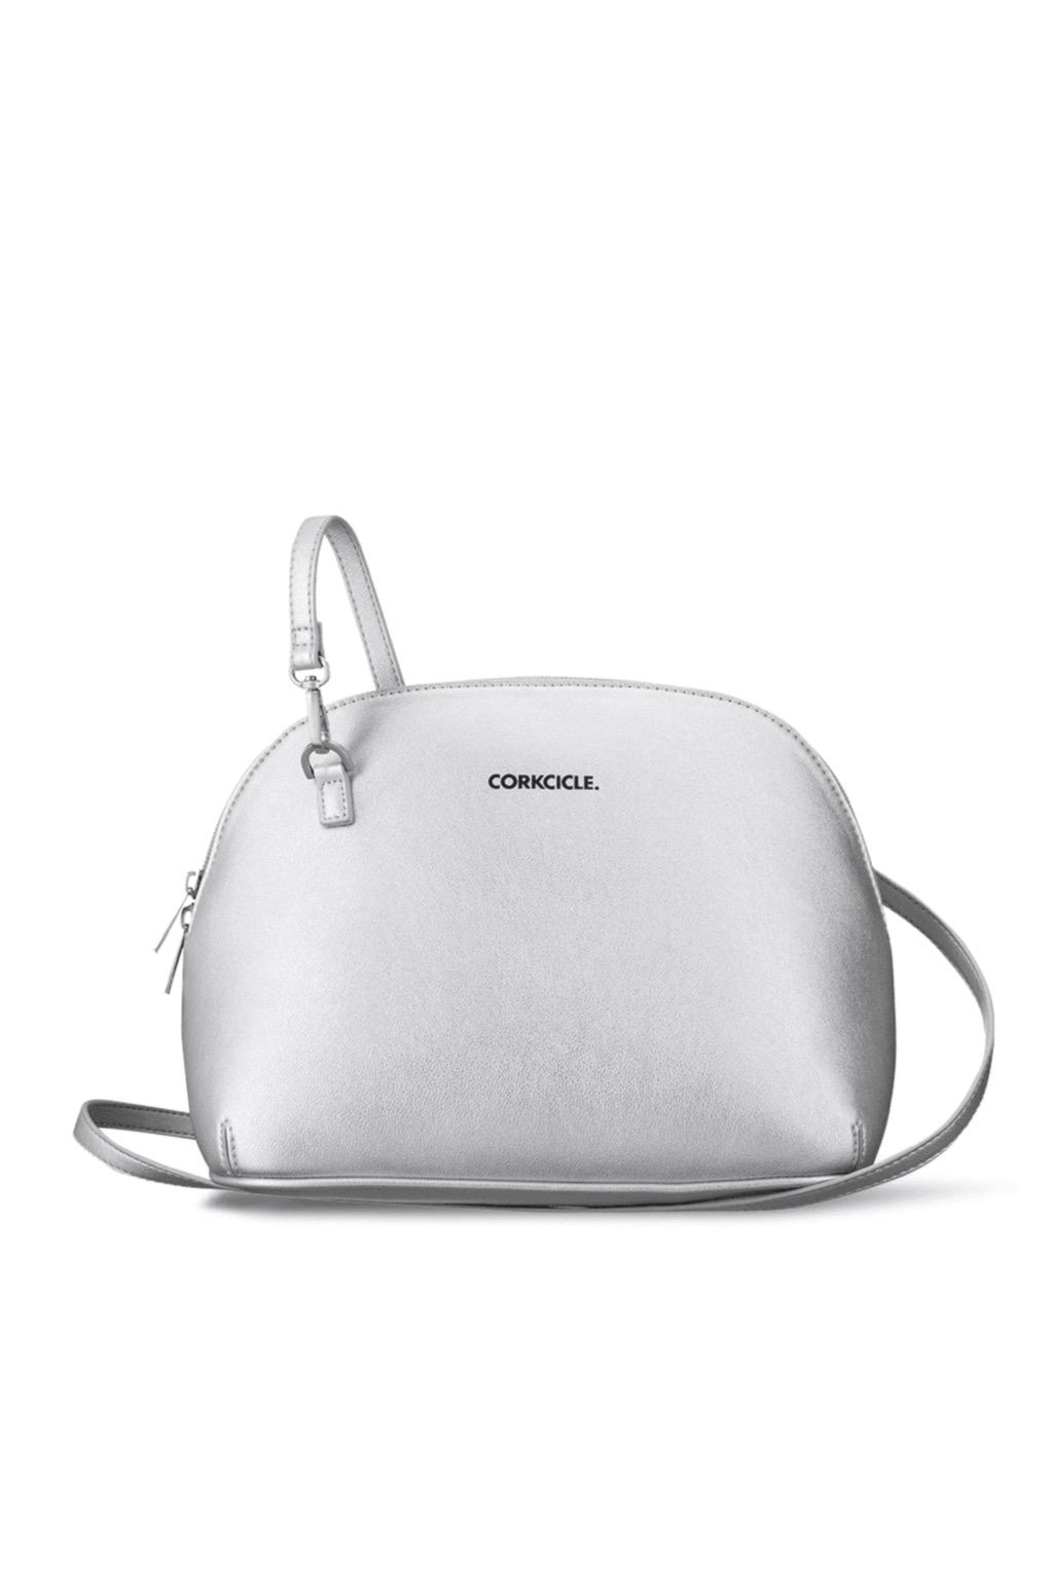 Corkcicle Crossbody Lunch Tote - Front Cropped Image